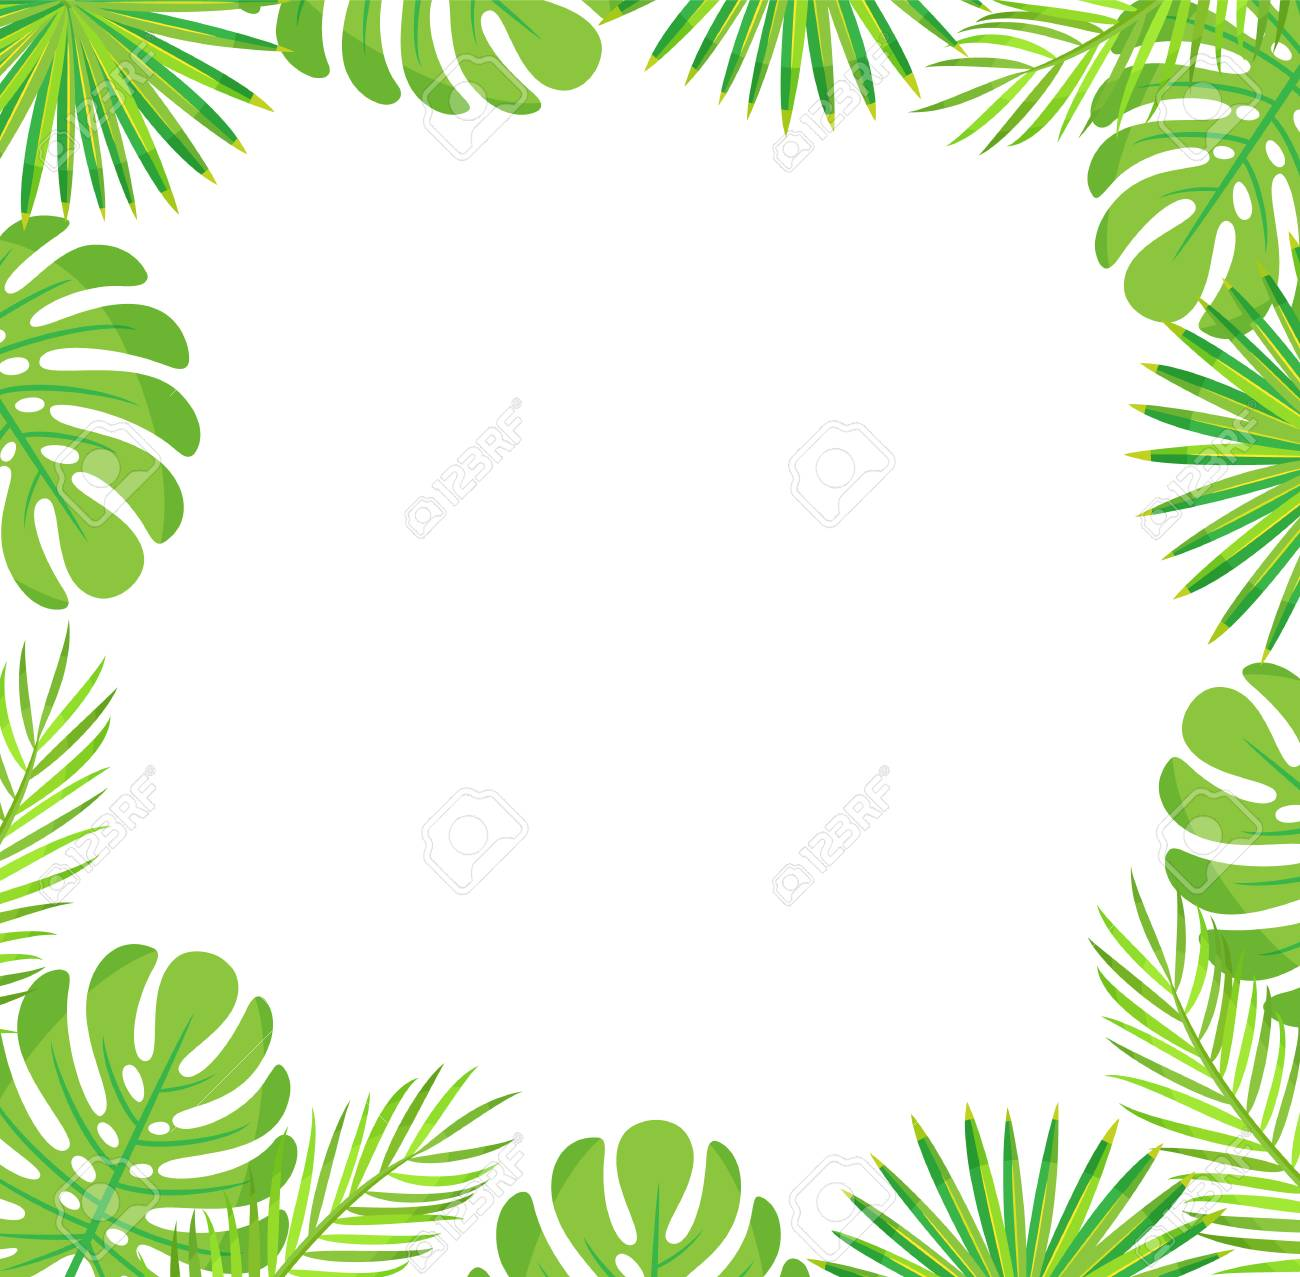 Tropical Leaves Border Isolated Green Leaves Of Palm And Monstera Royalty Free Cliparts Vectors And Stock Illustration Image 124935407 Find & download free graphic resources for leaves border. tropical leaves border isolated green leaves of palm and monstera